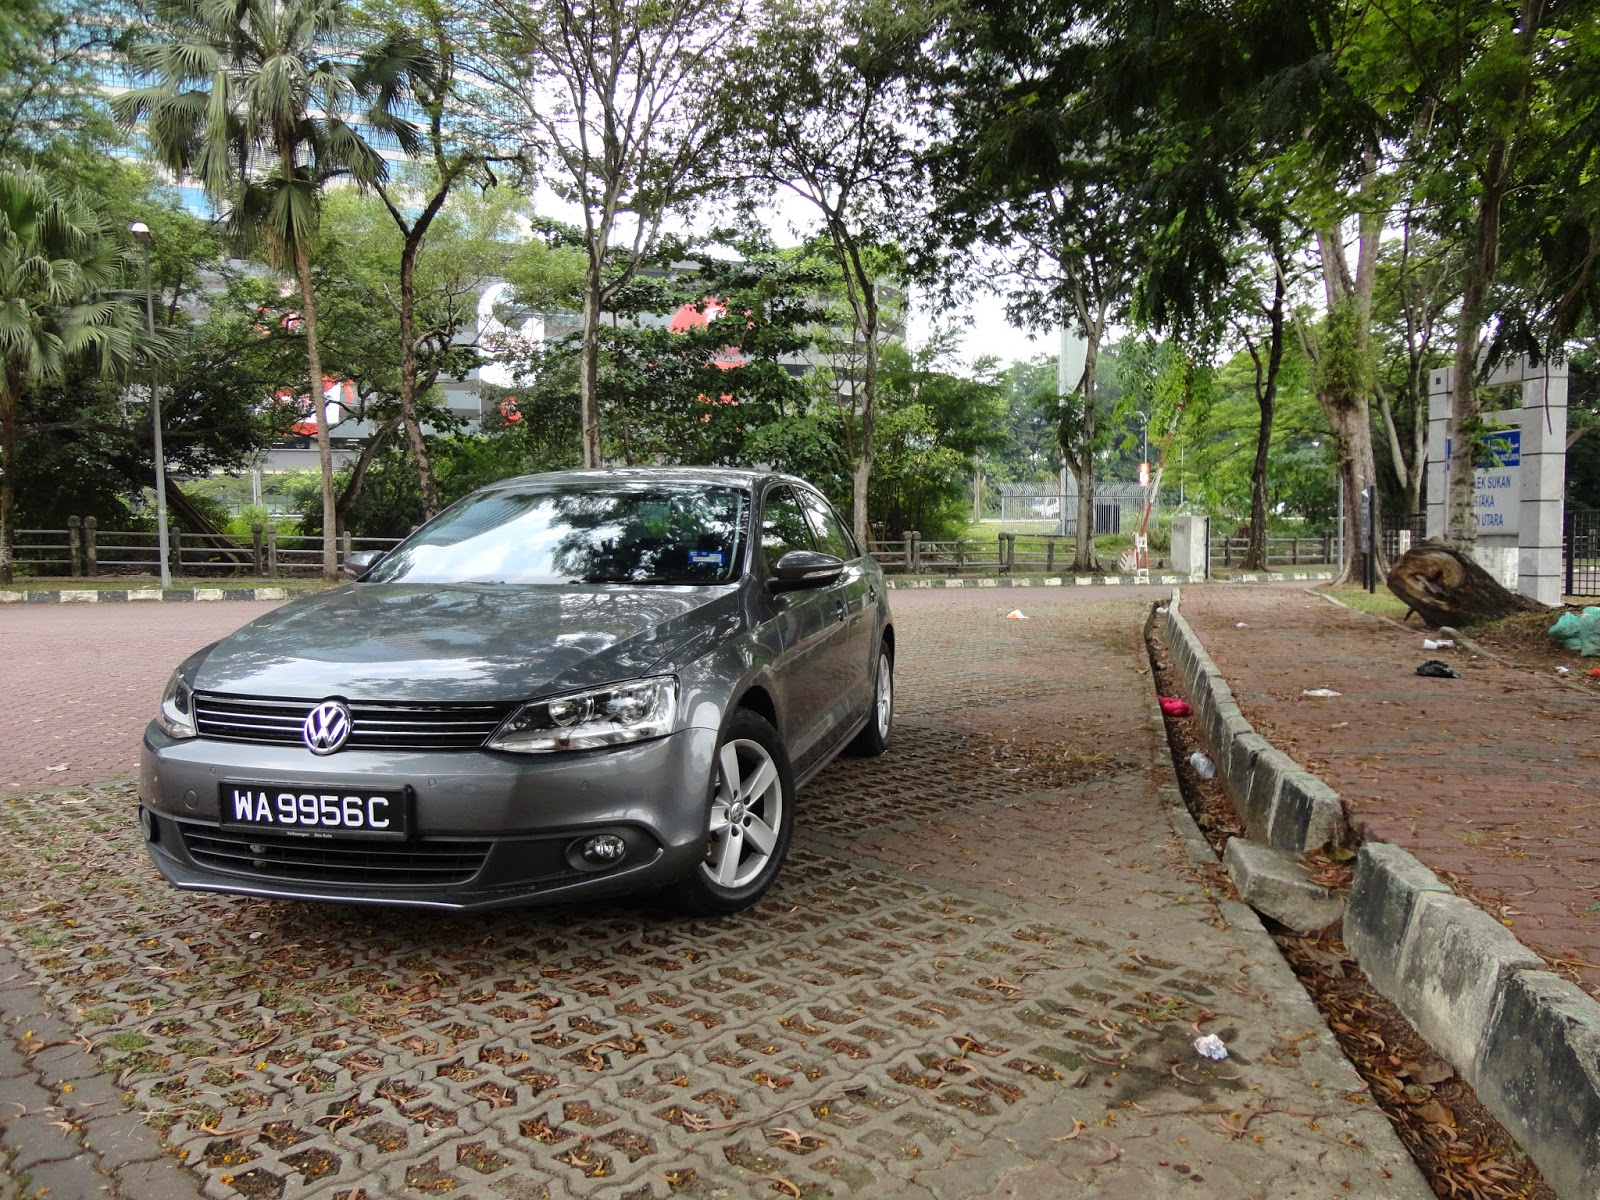 TEST DRIVE: 2014 Volkswagen Jetta 1.4TSI CKD - The wolf in sheepskin